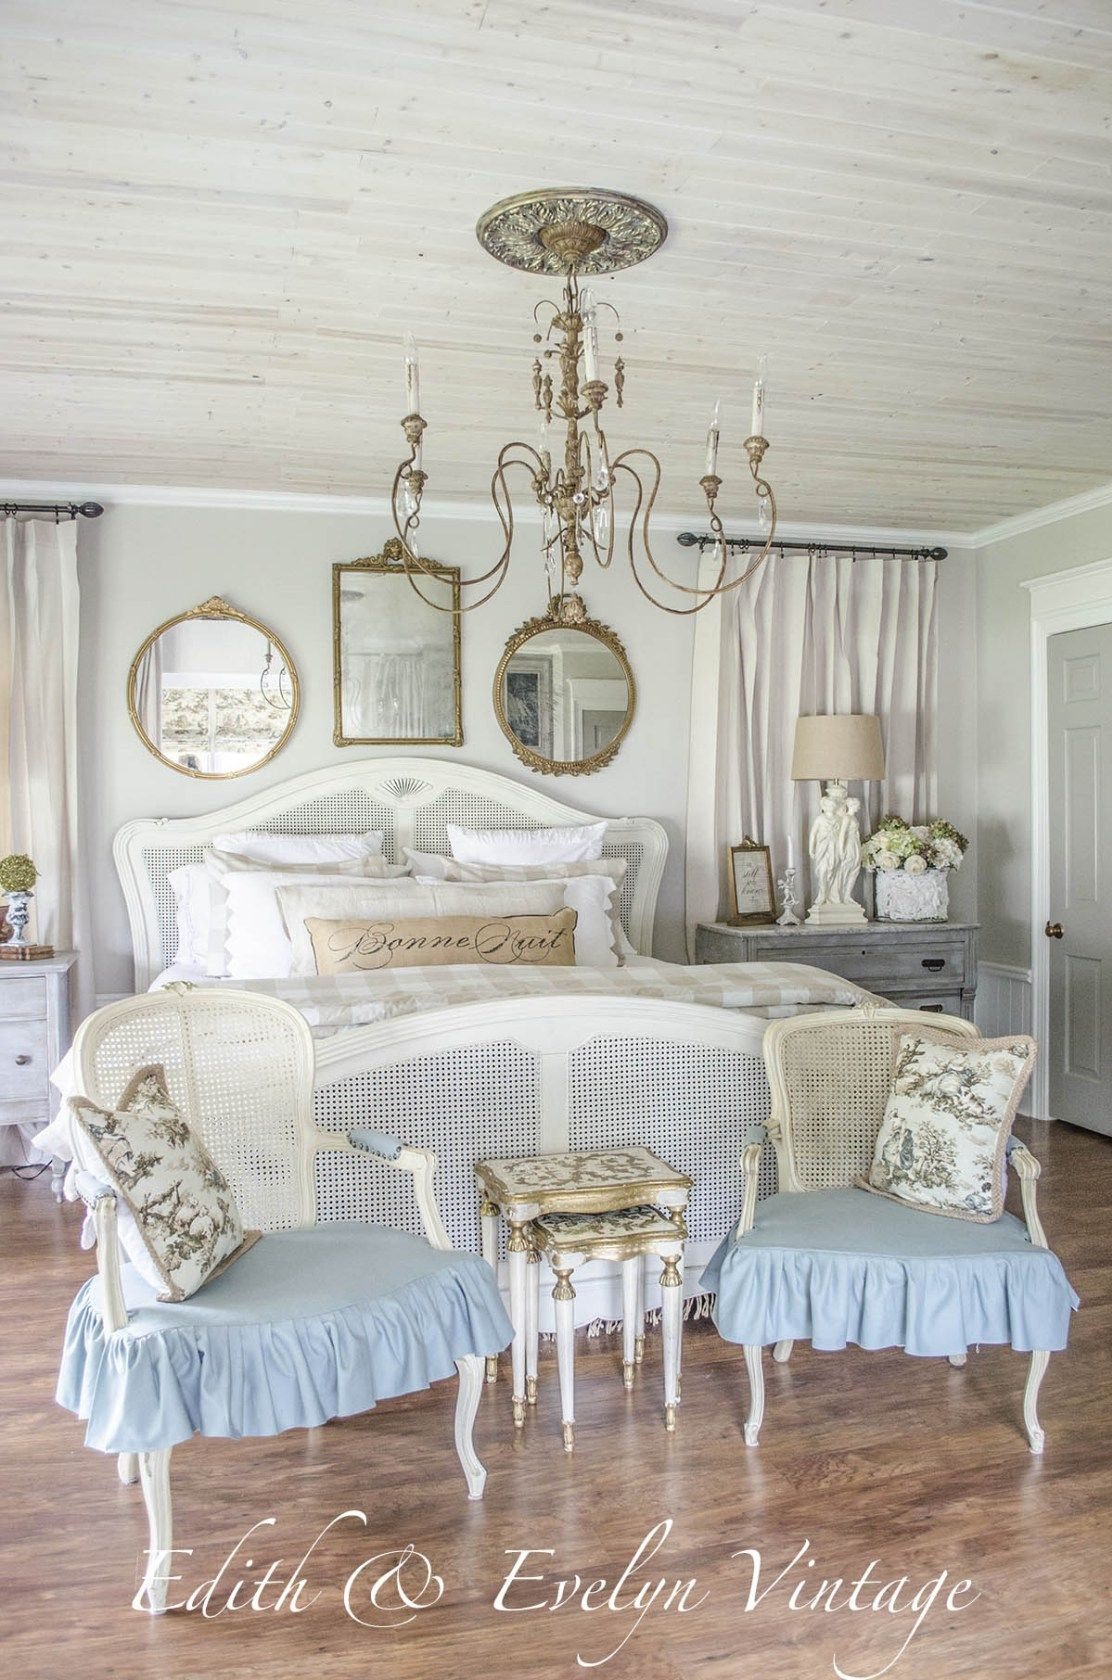 Transformation master bedroom edith evelyn vintage for French country master bedroom